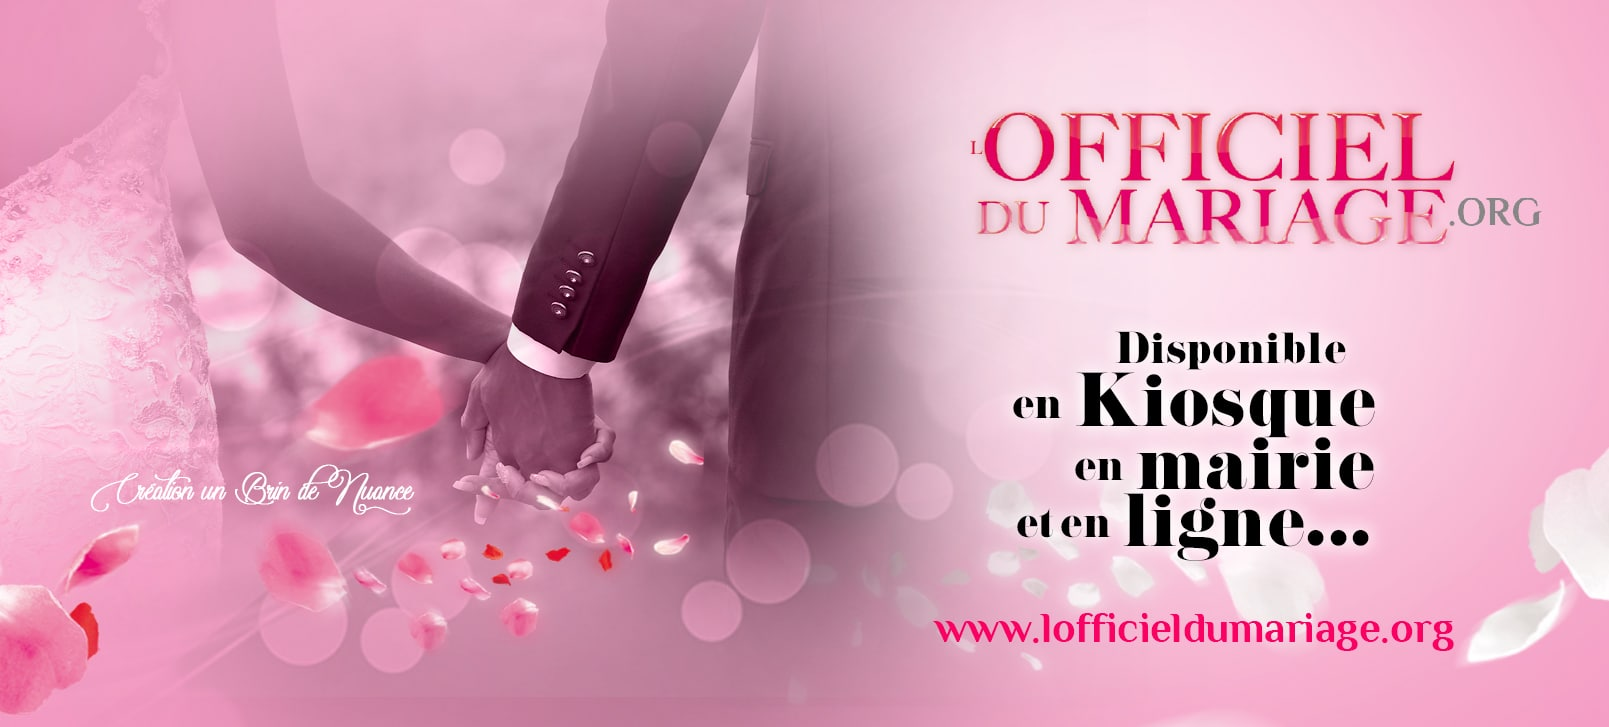 1609x727-OFFICIELDUMARIAGE4